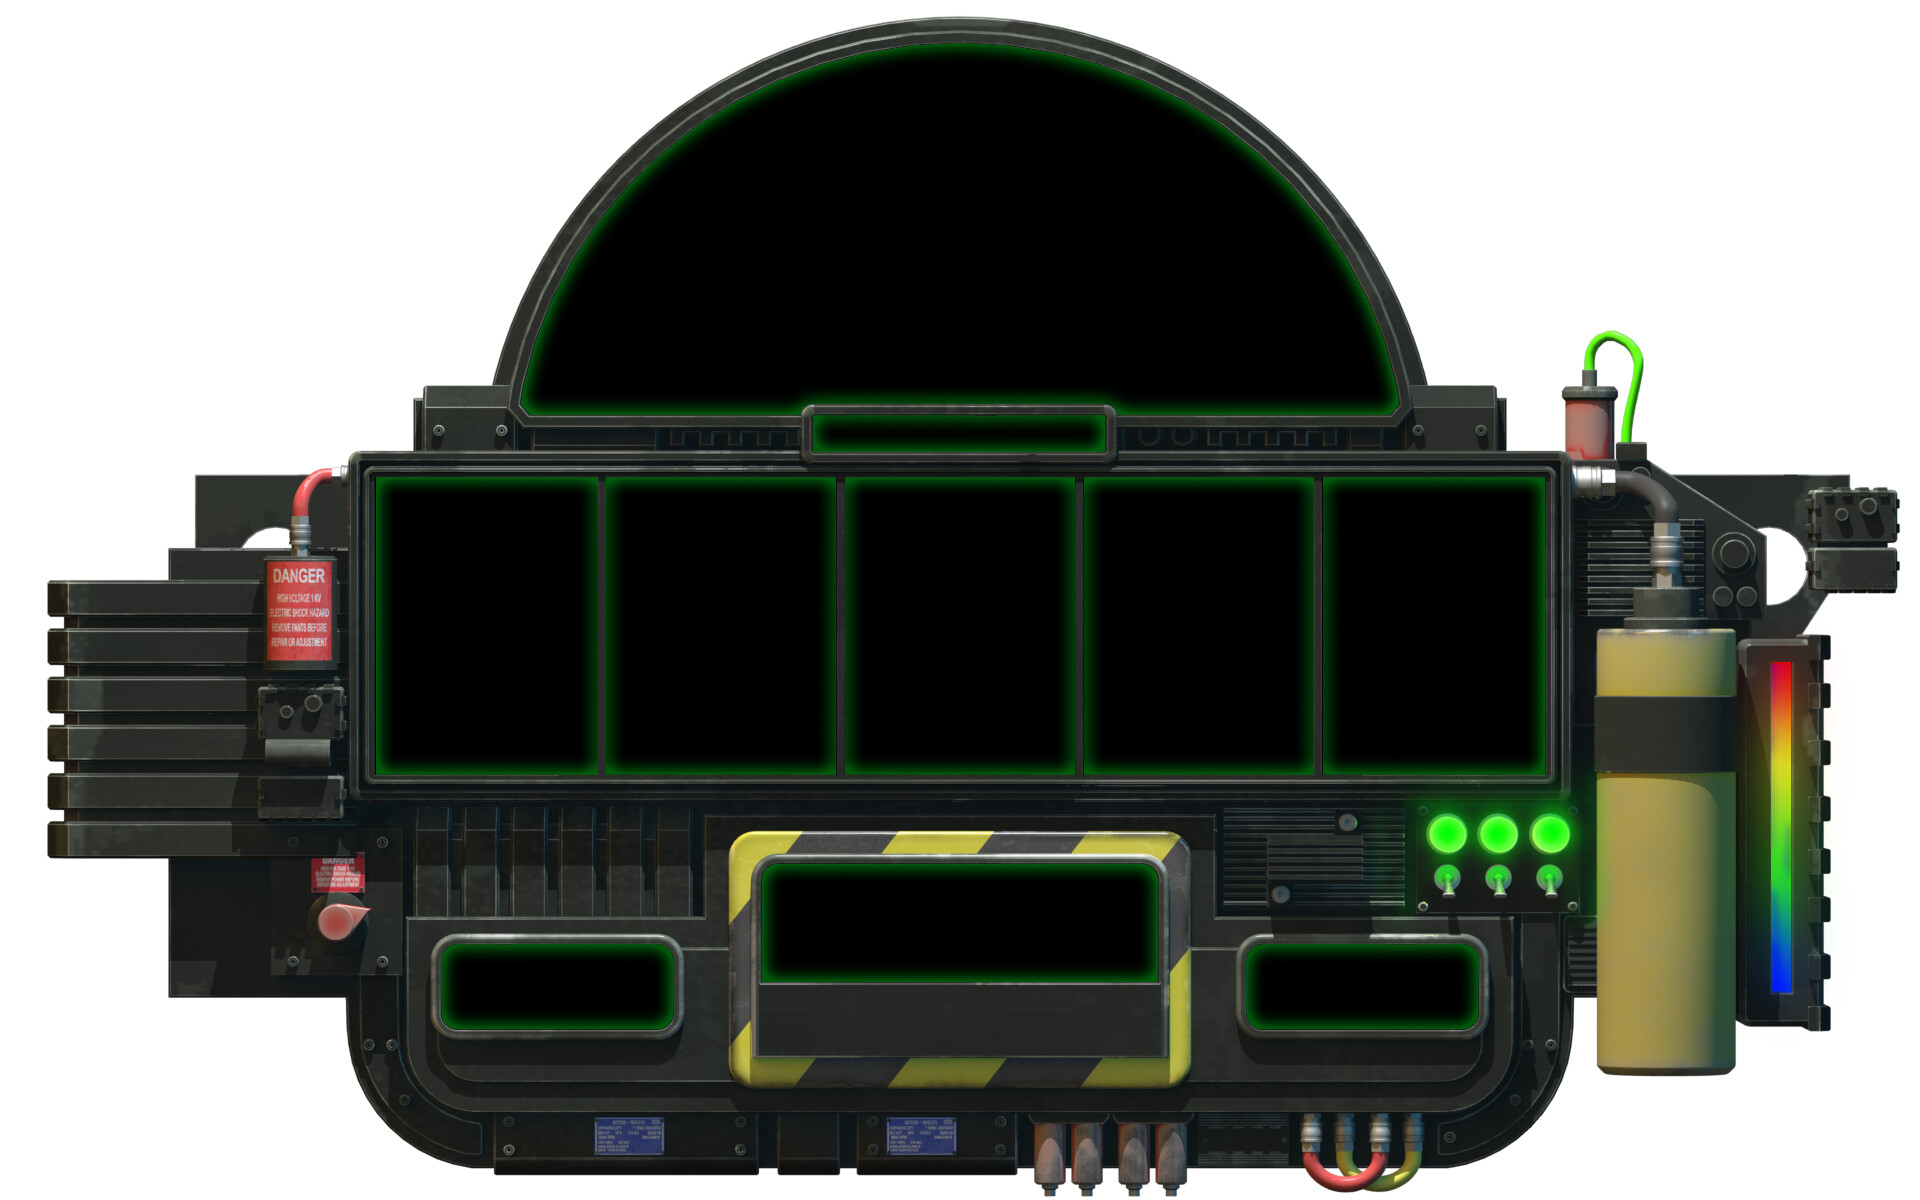 Double down casino roulette